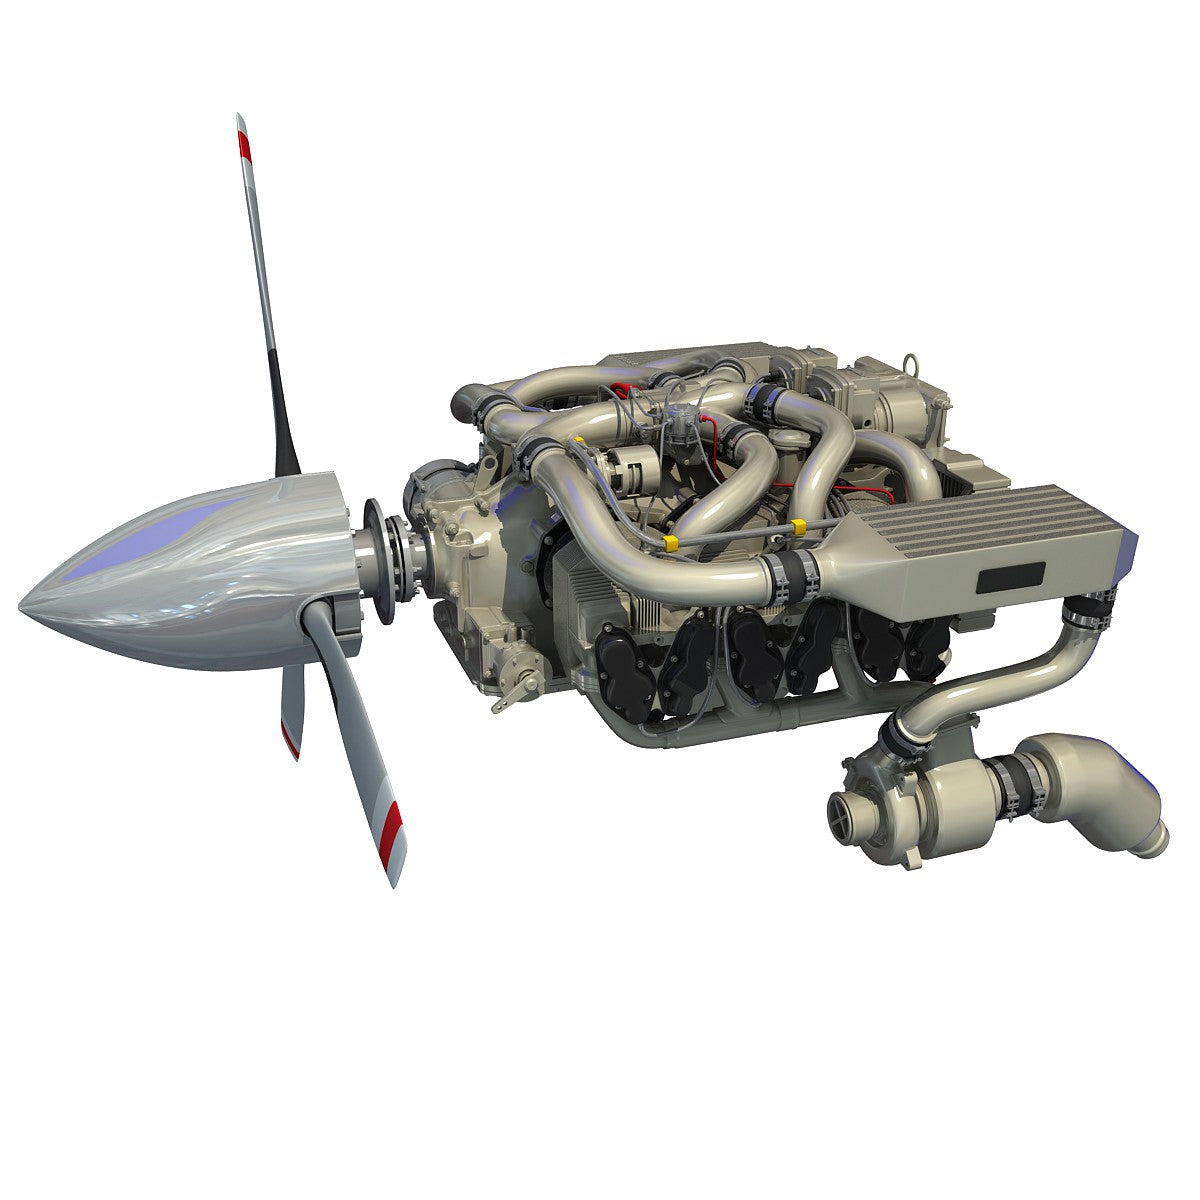 Continental IO-550 Aircraft Engine Model